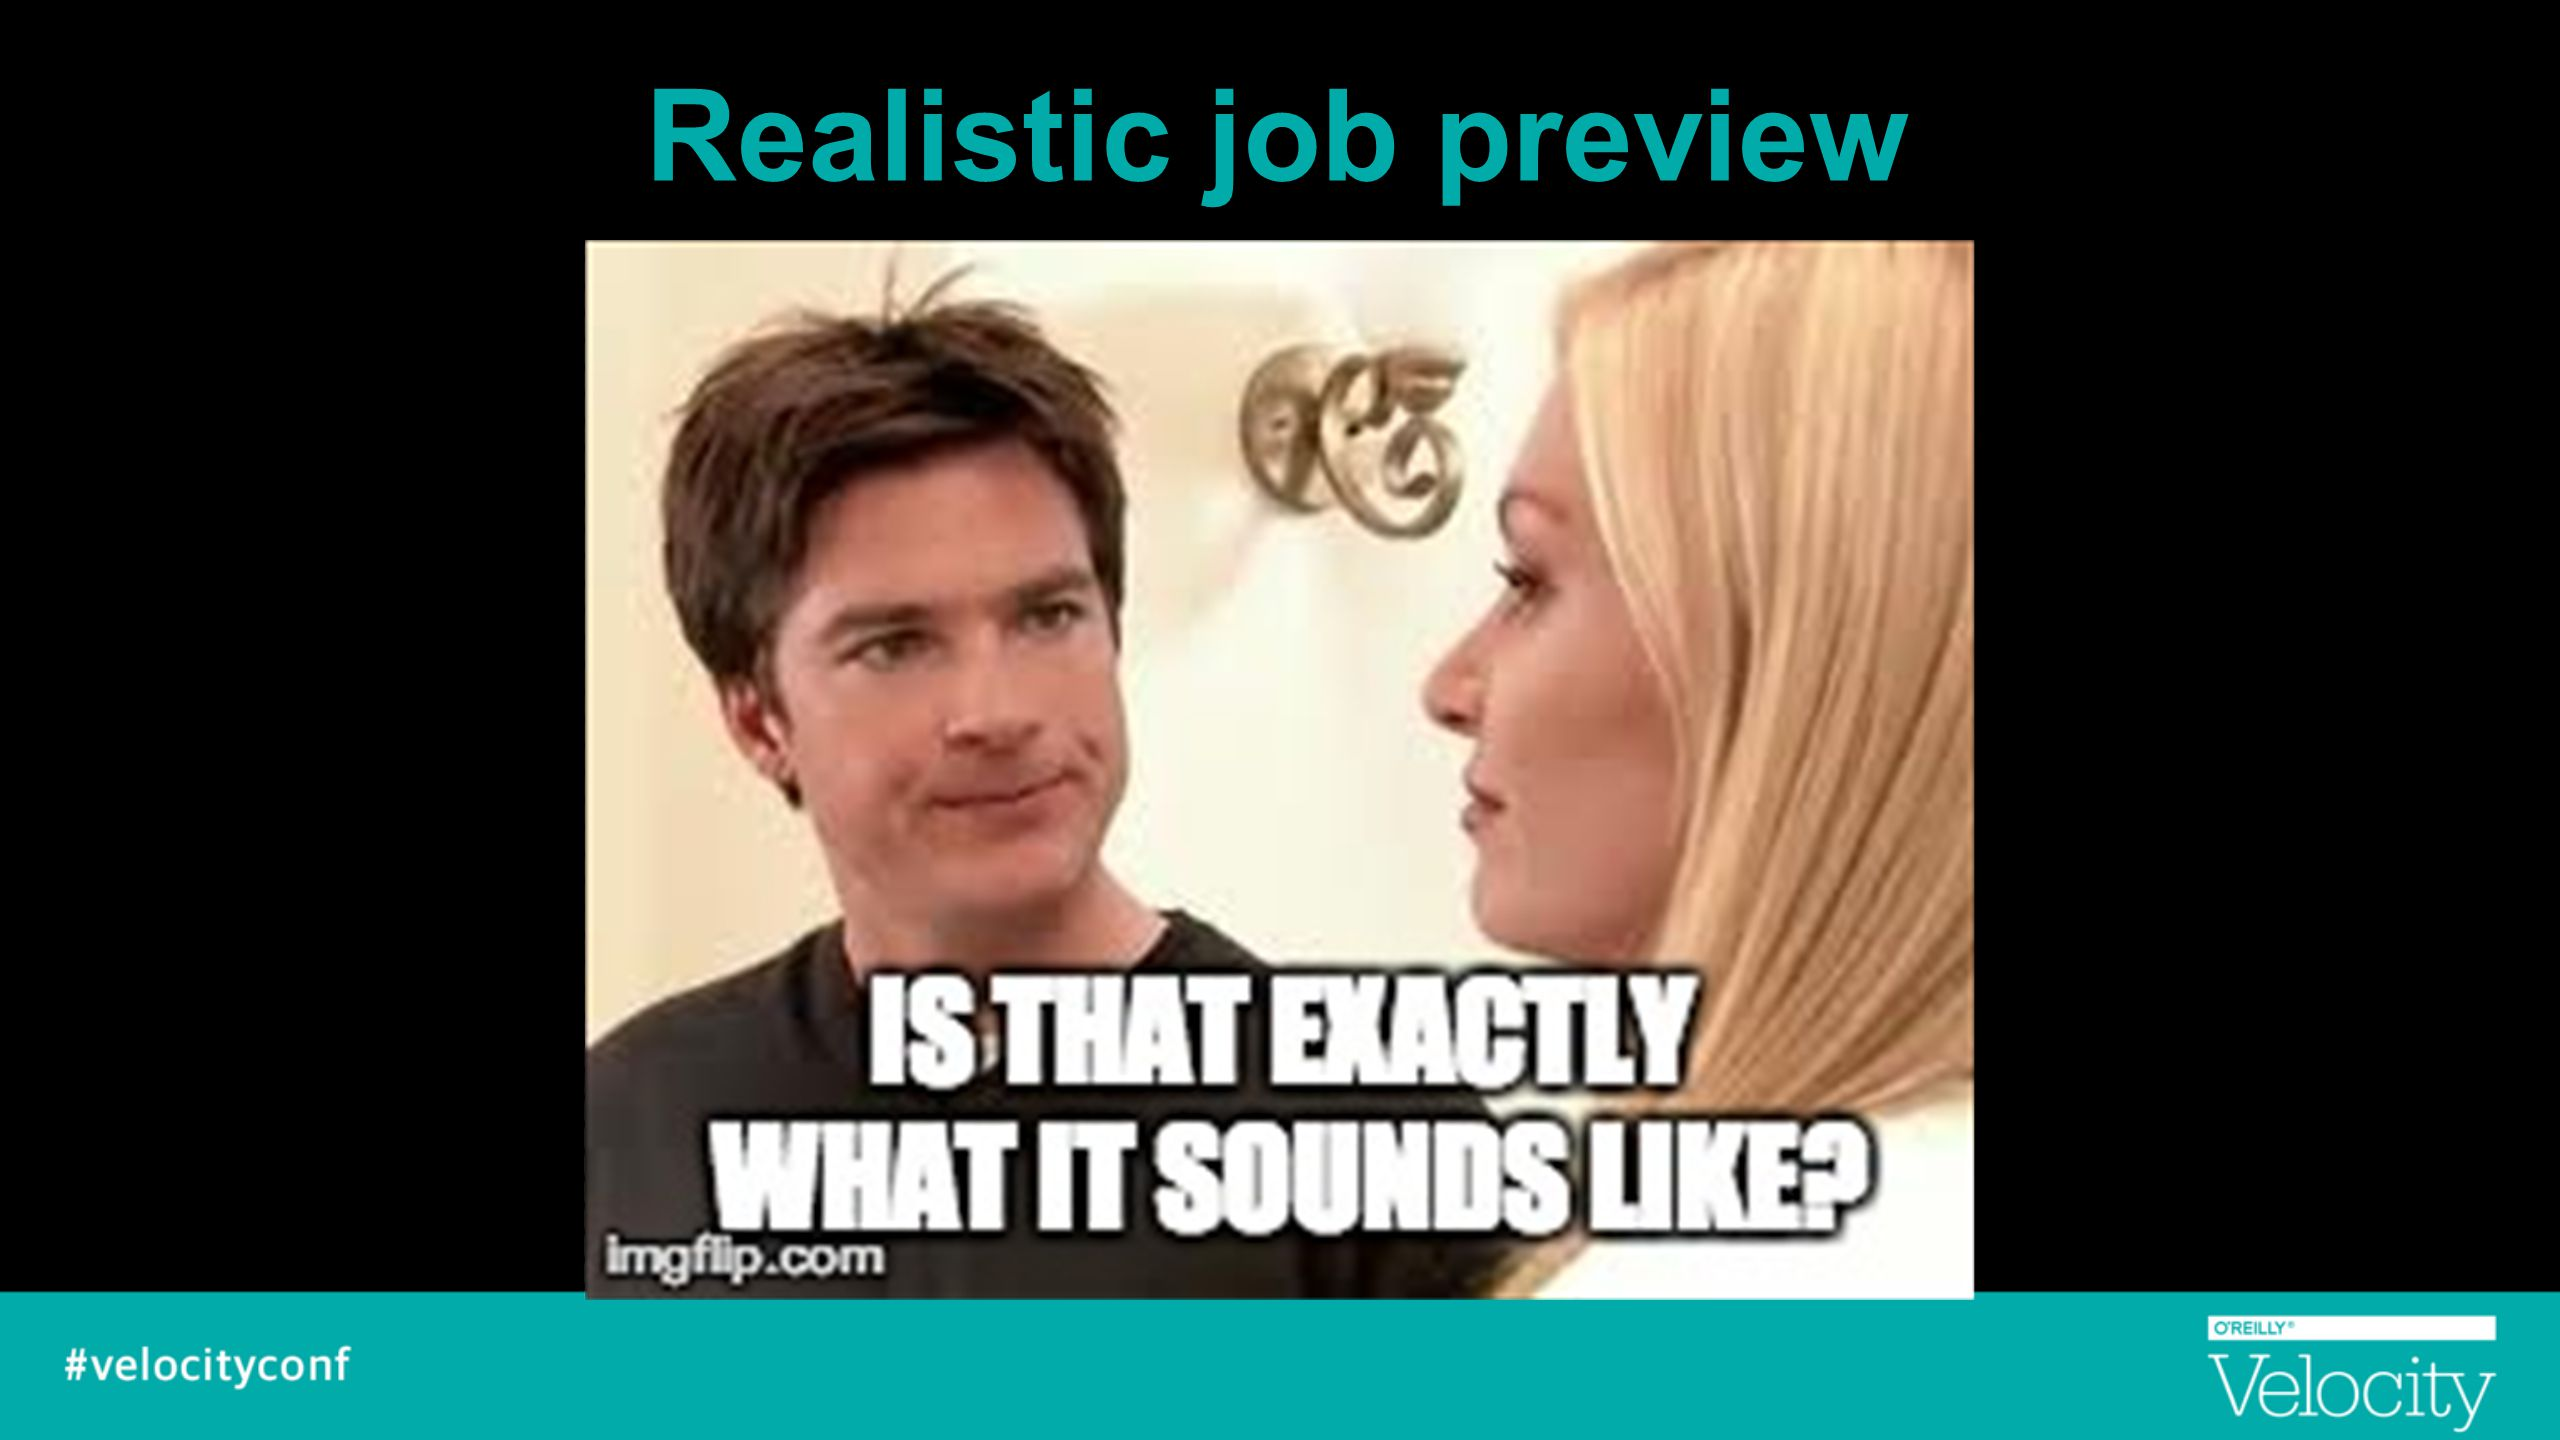 Realistic job preview